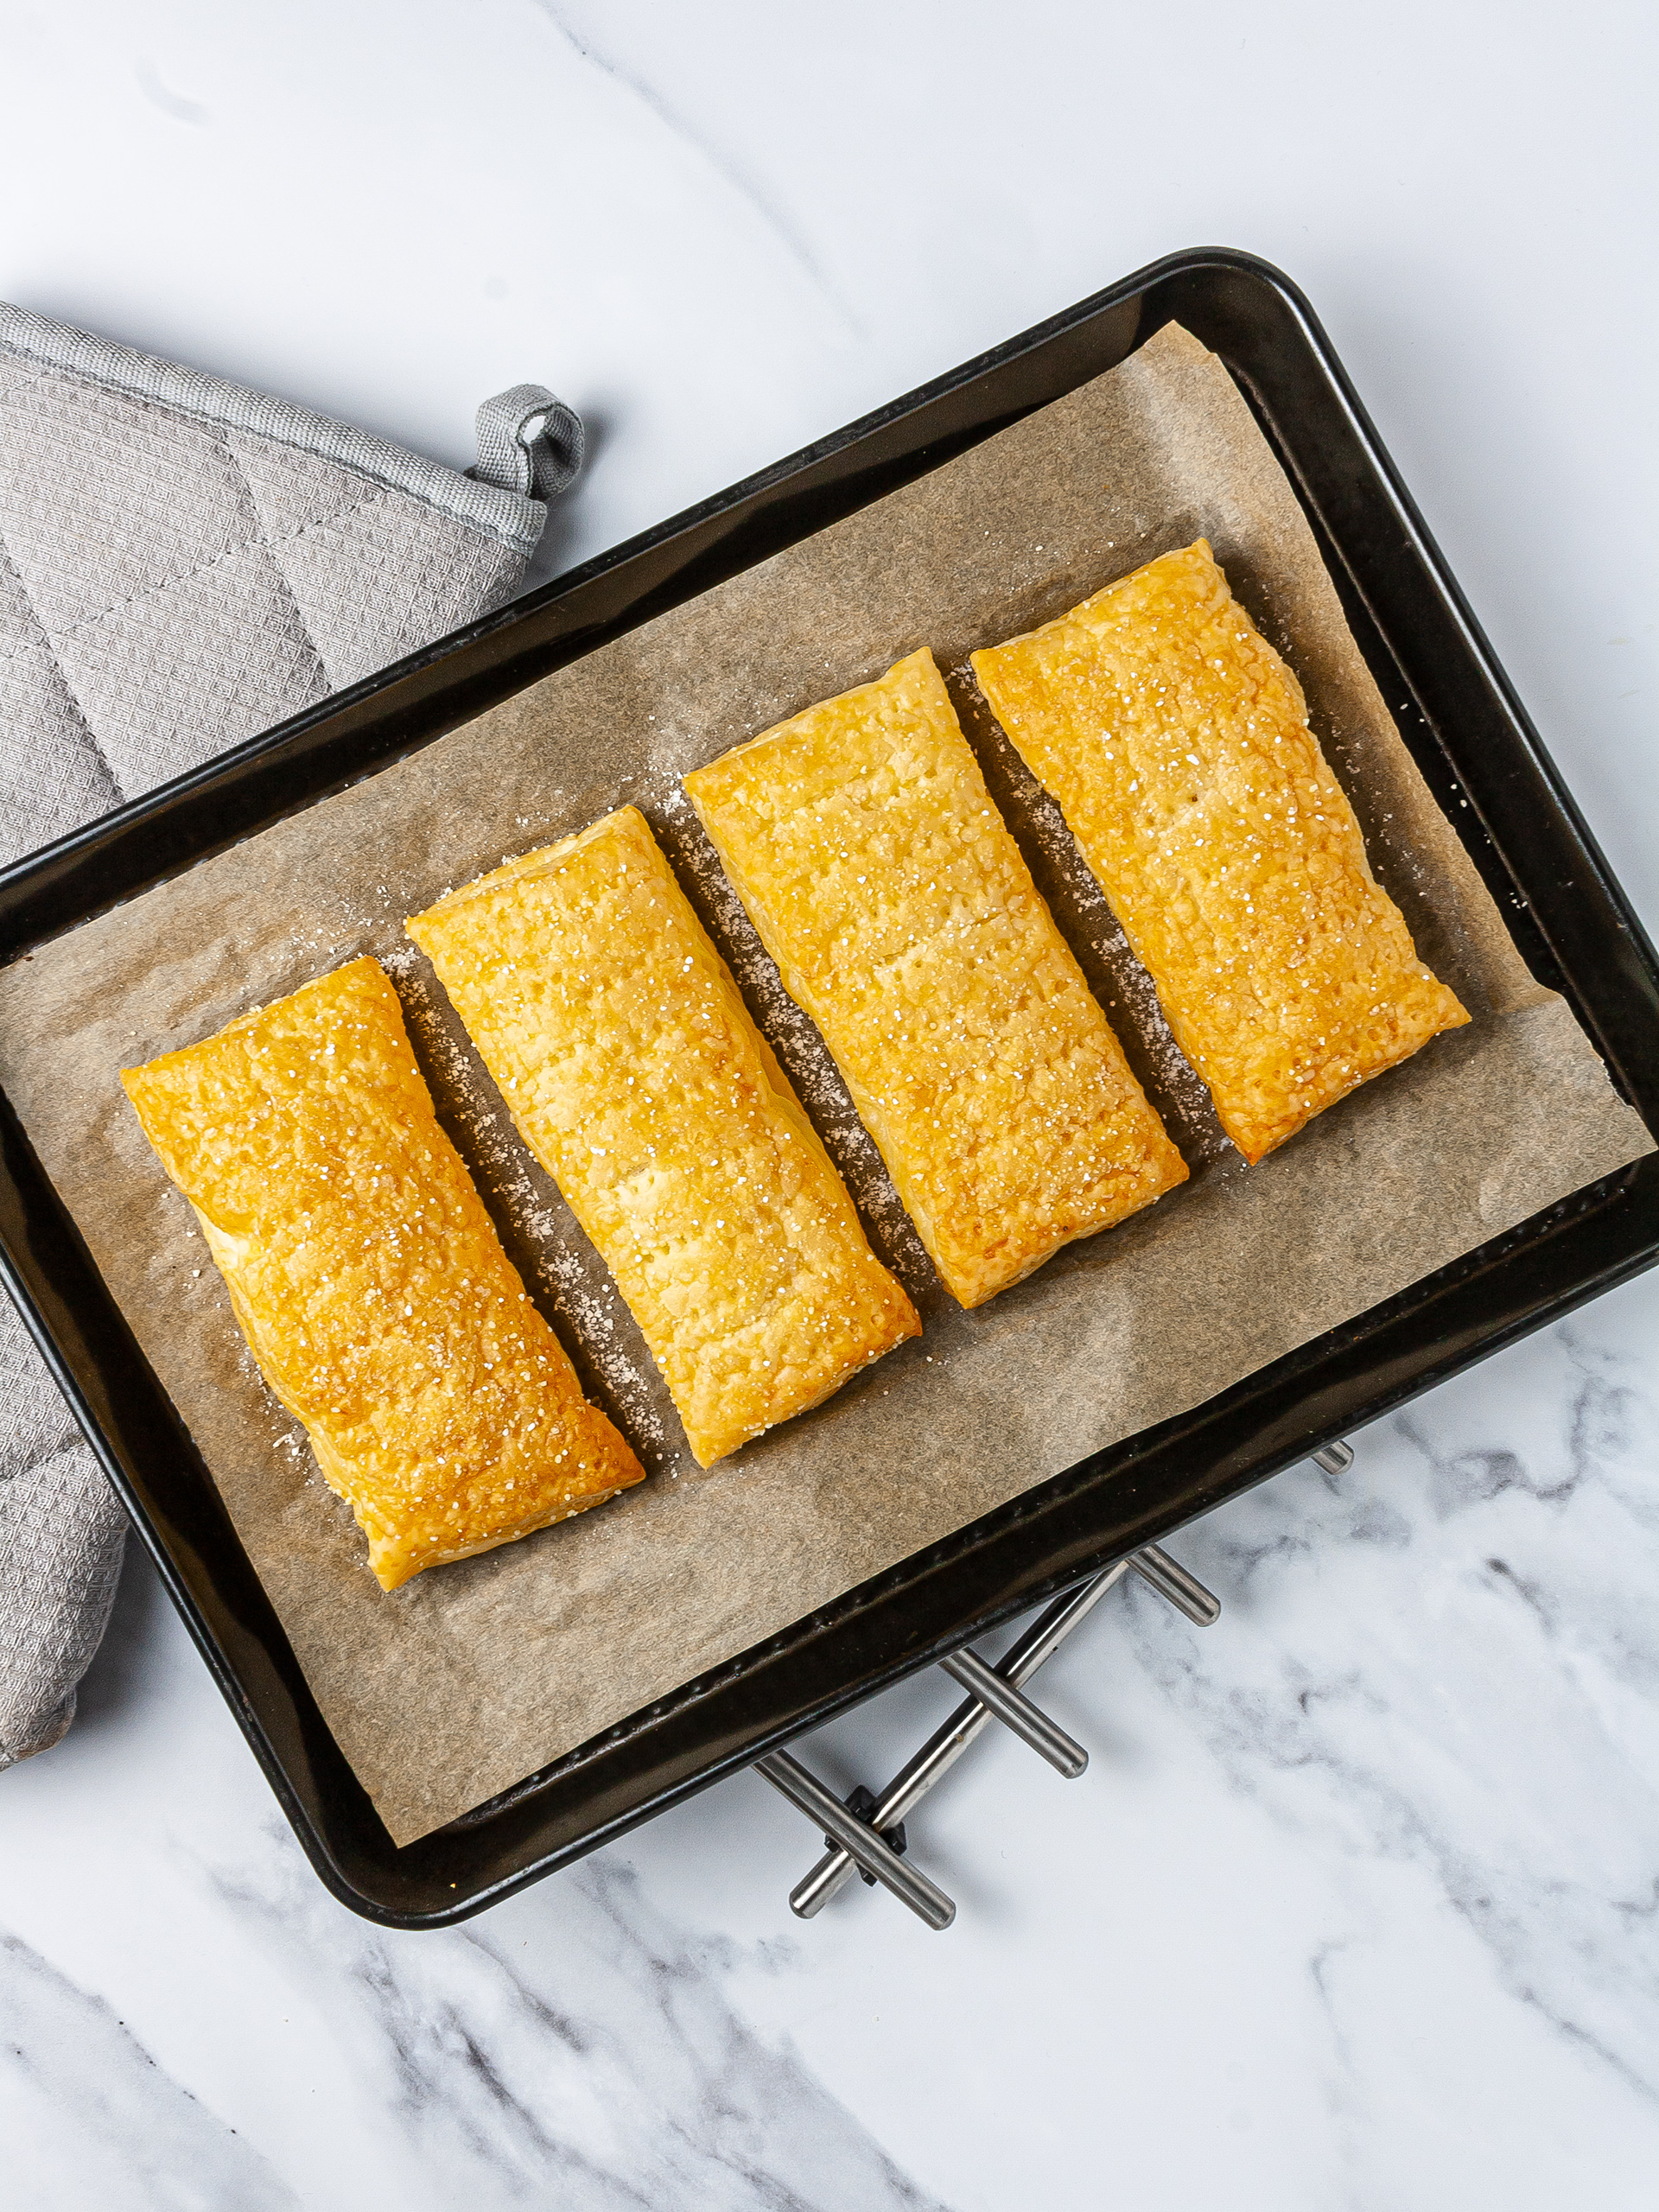 Baked puff pastry in baking tray